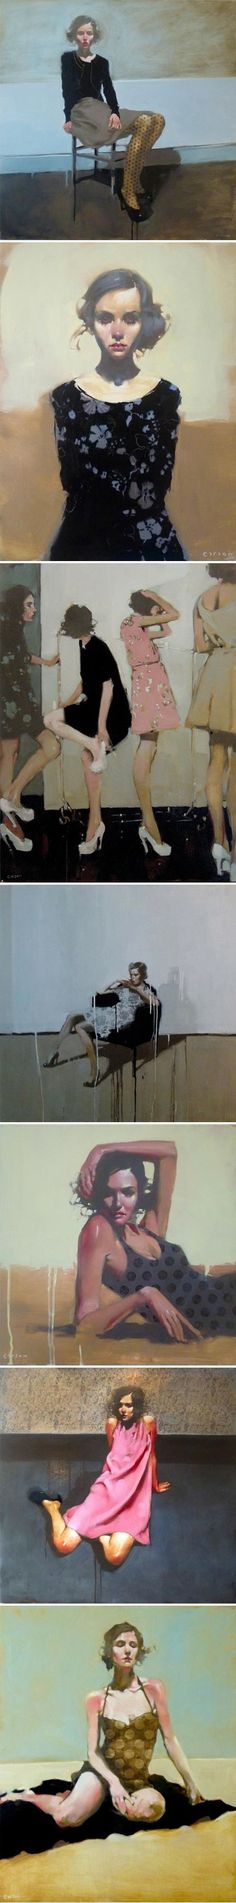 American painter Michael Carson. Influenced by the paintings of Toulouise Loutrec, John Singer Sargent, Norman Rockwell, Malcolm Liepke, and Milt Kobayashi, Michael Carson is primarily a figurative Artist who likes to tell a story. (scheduled via http://www.tailwindapp.com?utm_source=pinterest&utm_medium=twpin&utm_content=post57338232&utm_campaign=scheduler_attribution)